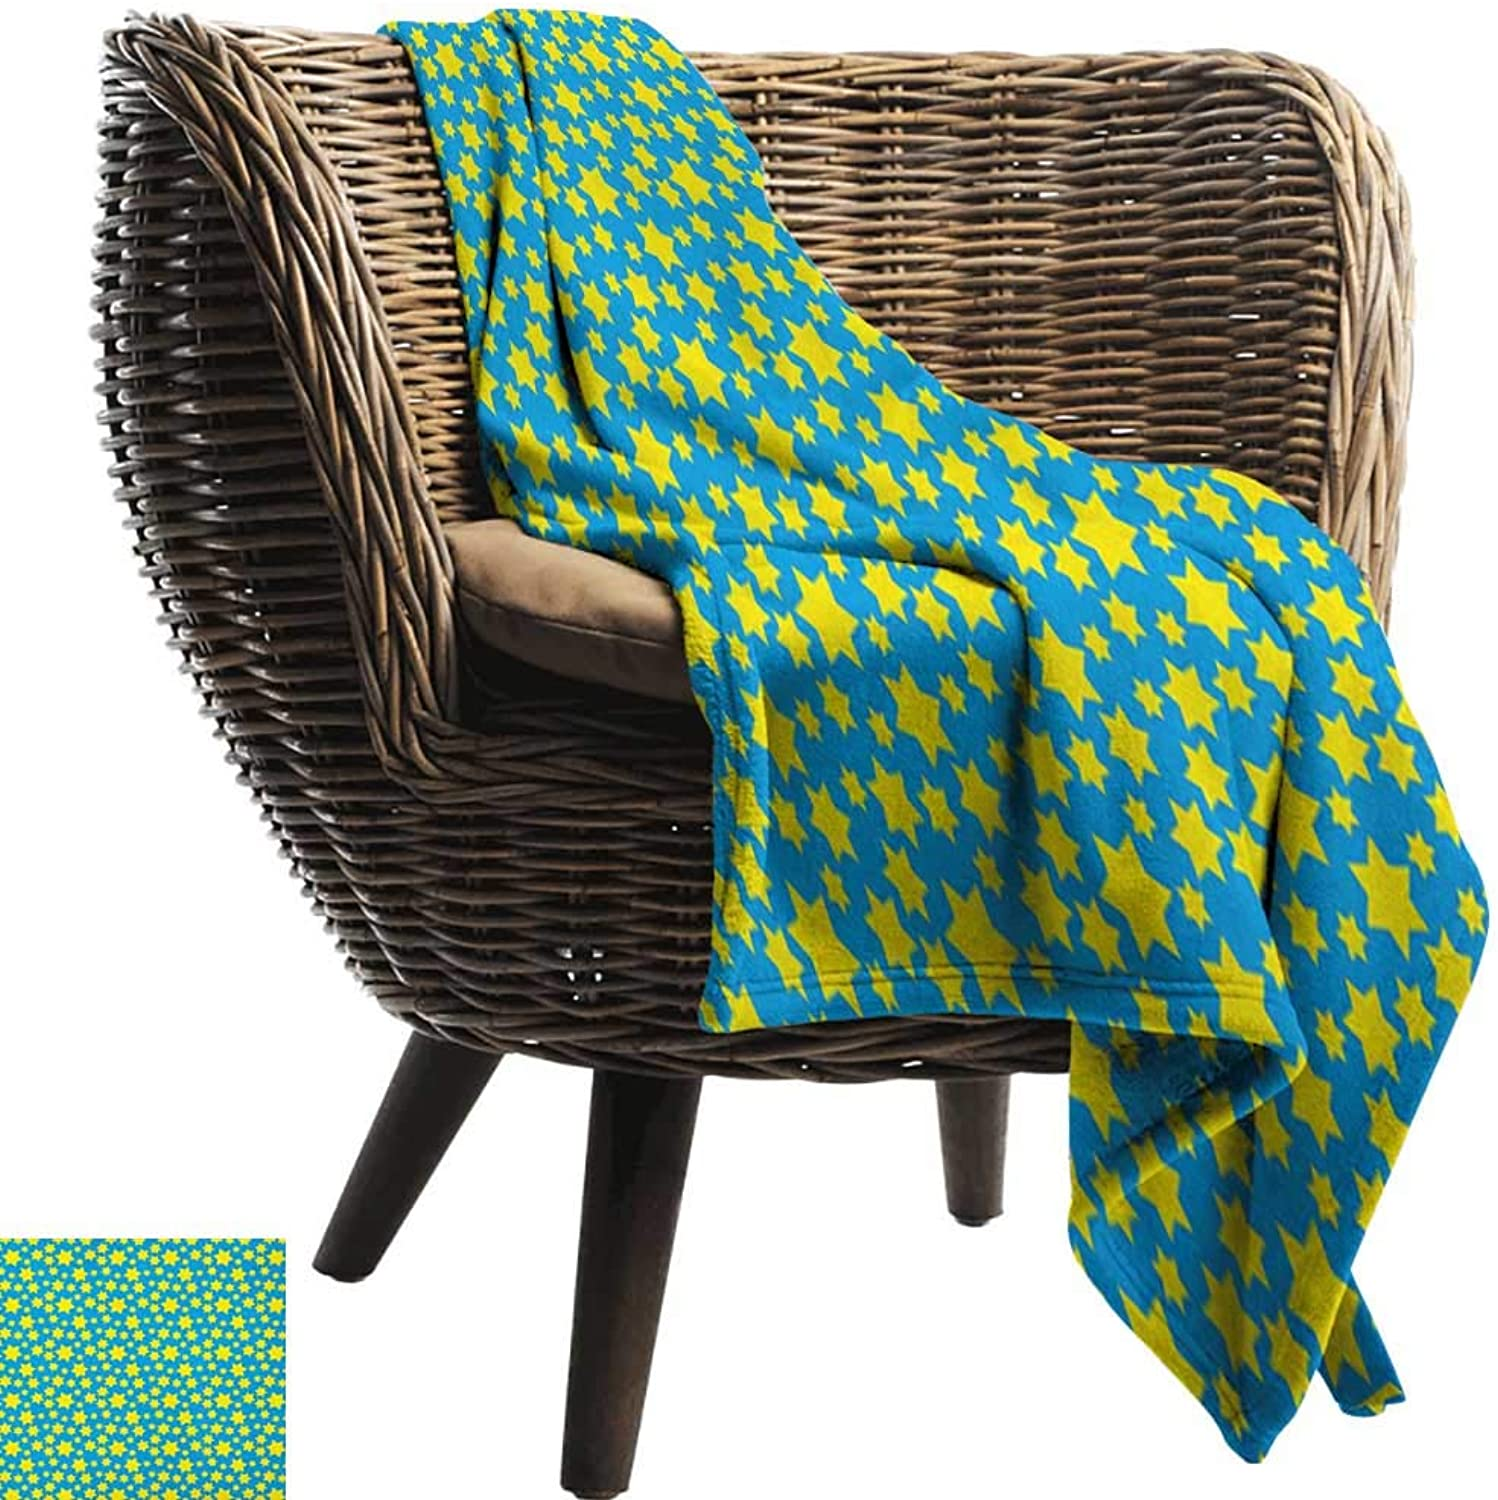 Warmfamily Blanket Sheets Yellow and bluee Stars Motif in Various Size Spiritual with Kids Effects Cute Design All Season Light Weight Living Room50 Wx60 L